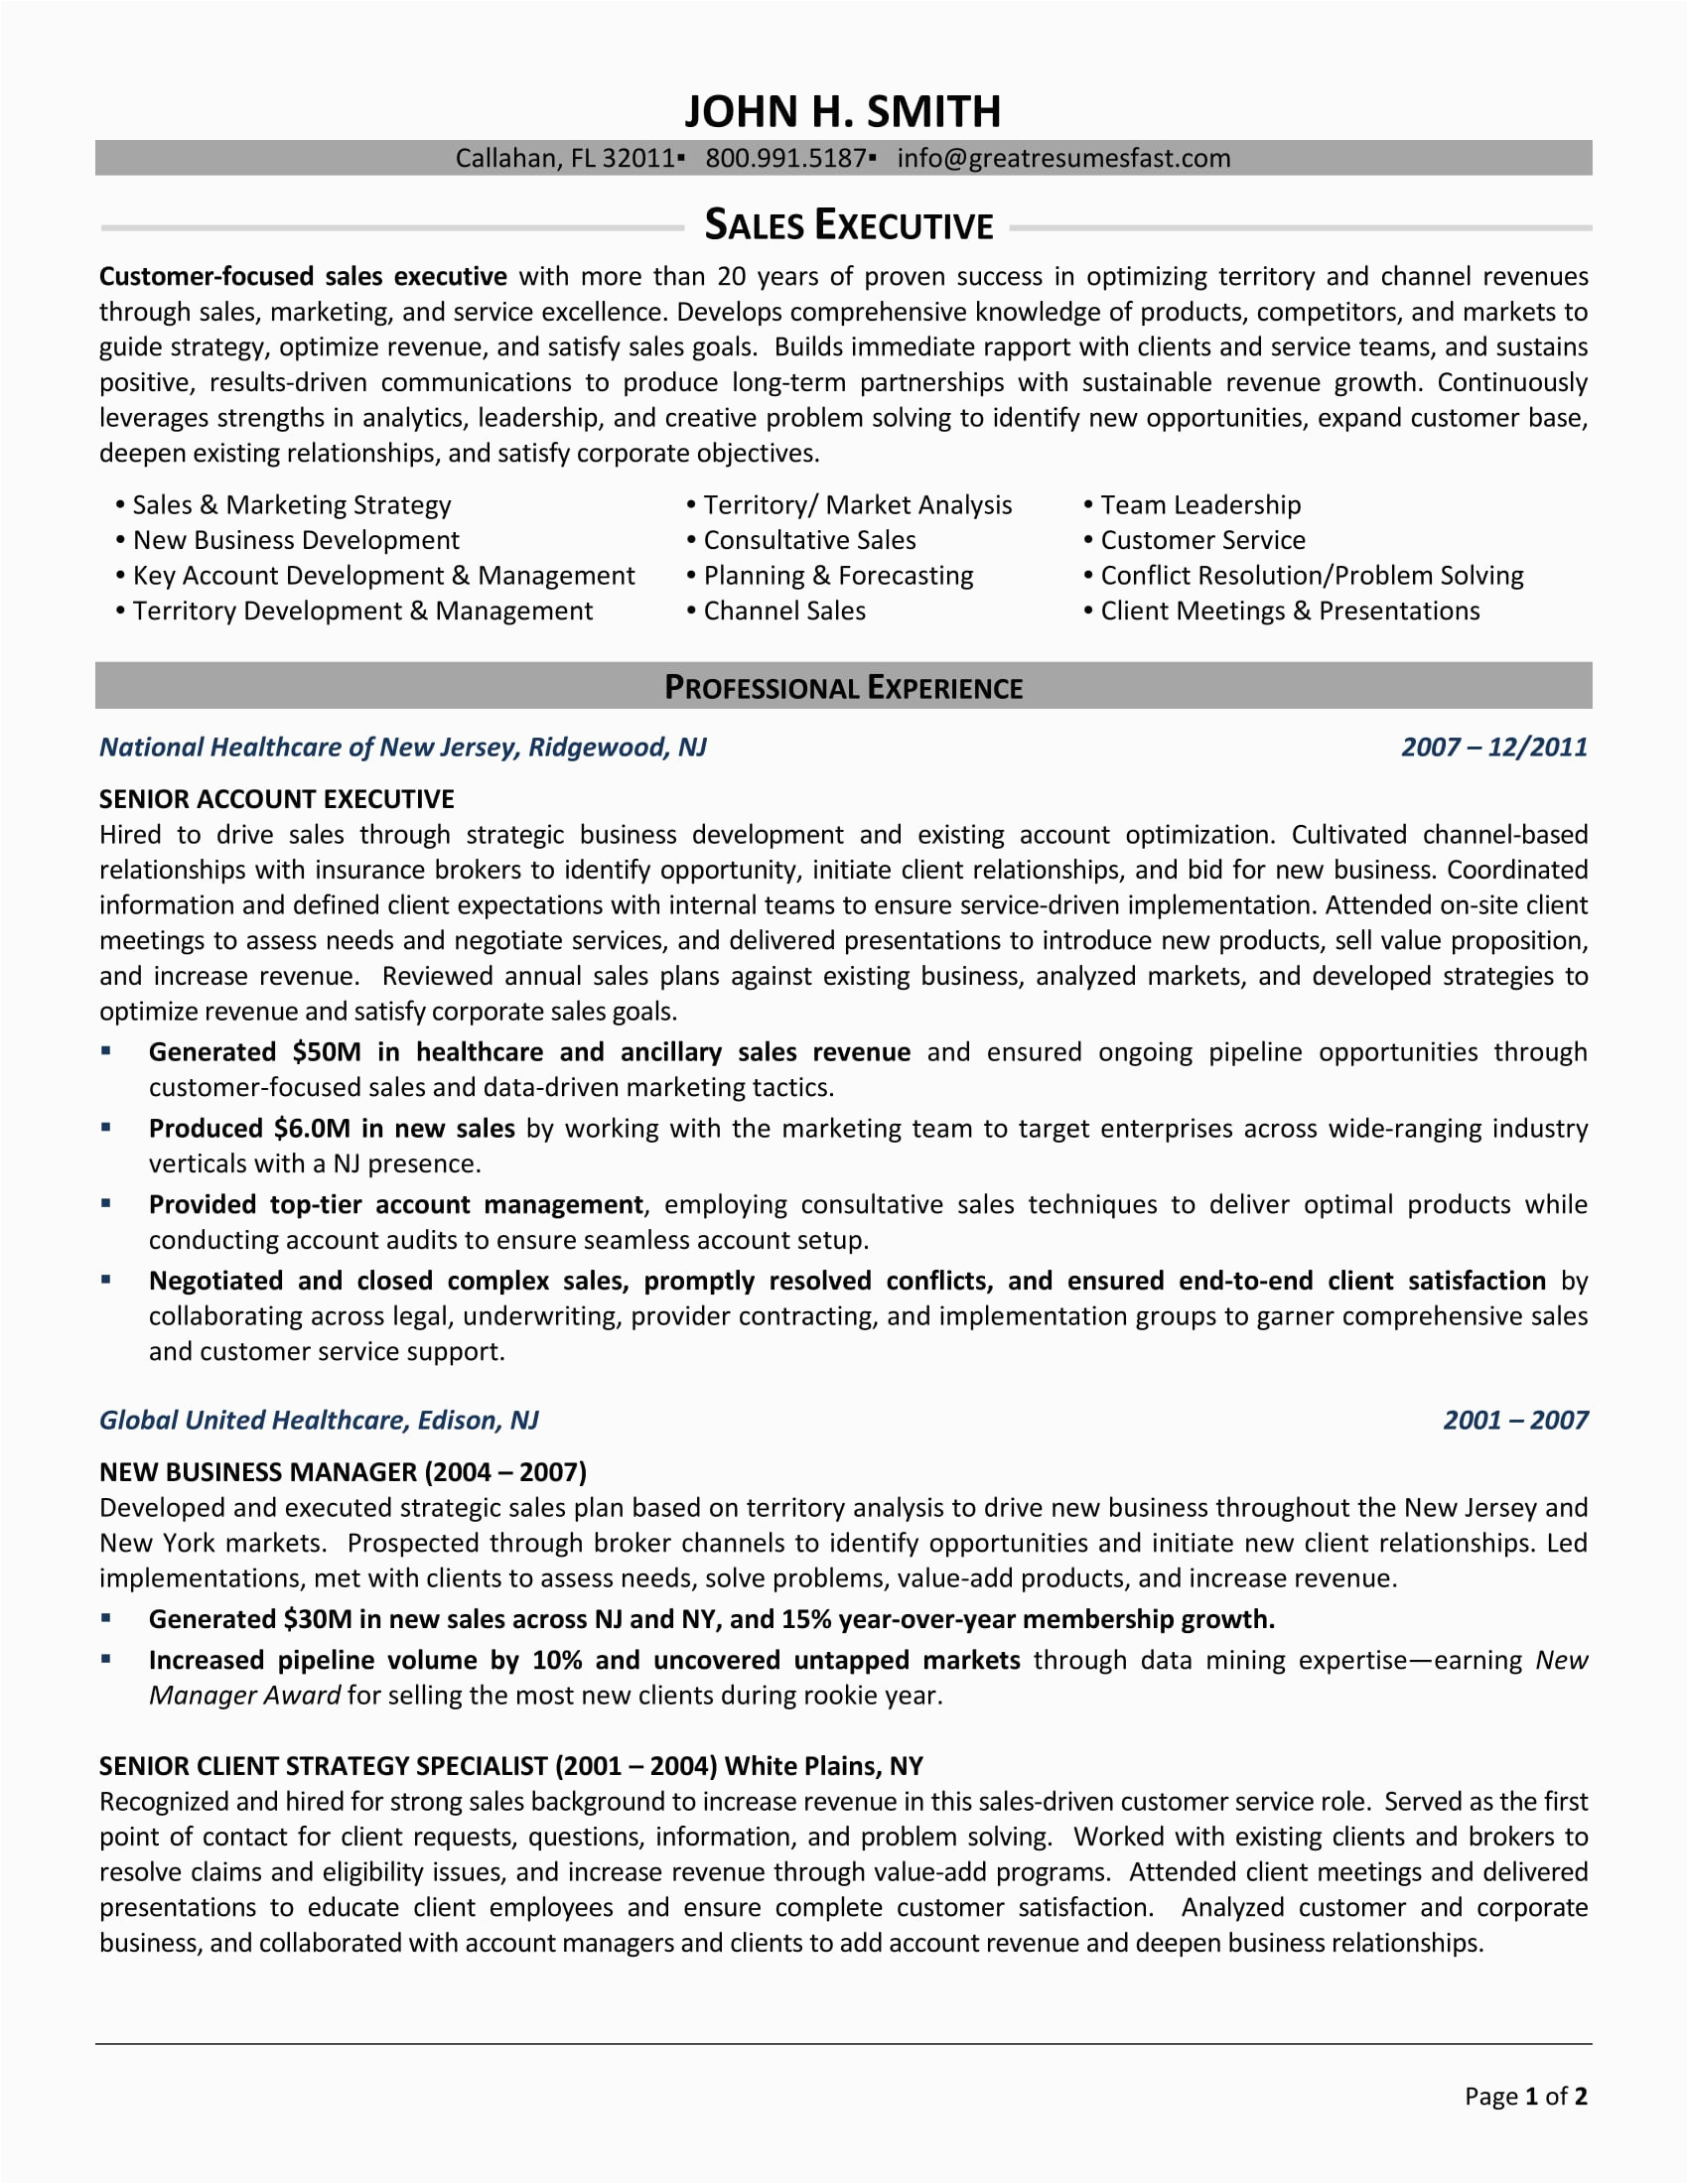 Sample Resume format for Sales Executive 24 Best Sample Executive Resume Templates Wisestep